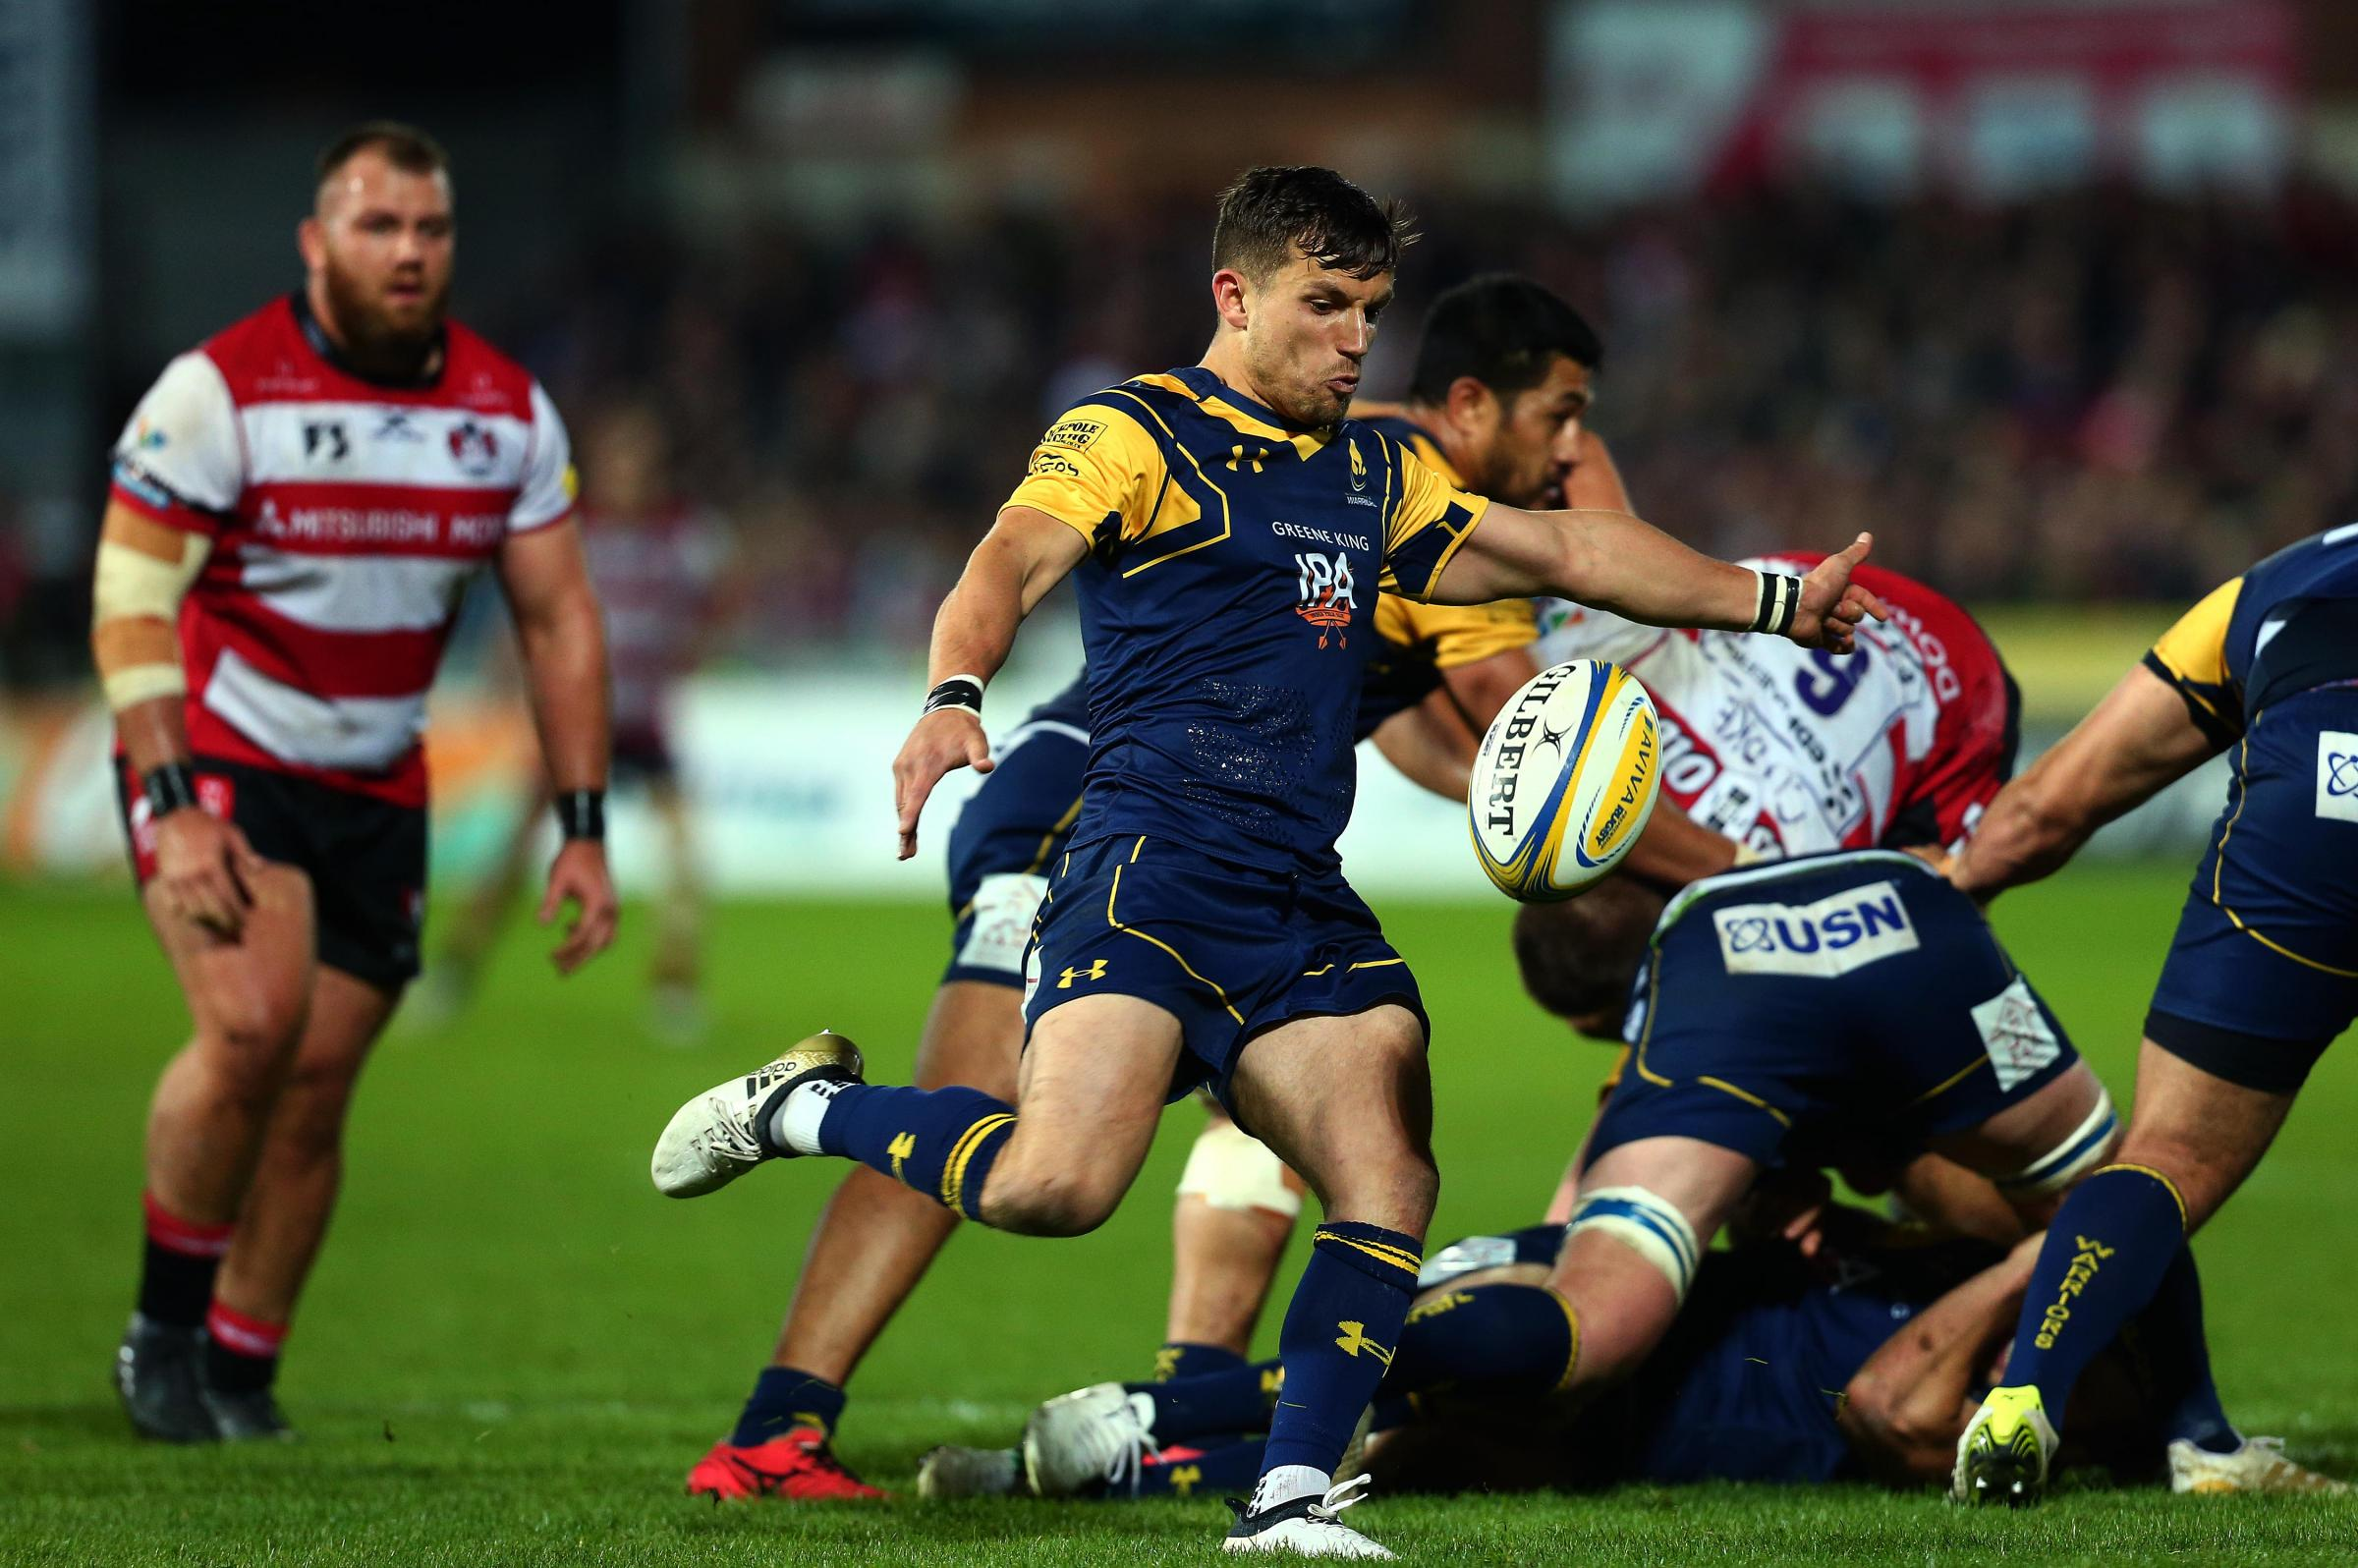 Jono Kitto in action for Worcester Warriors last season. Picture: Robbie Stephenson/JMP